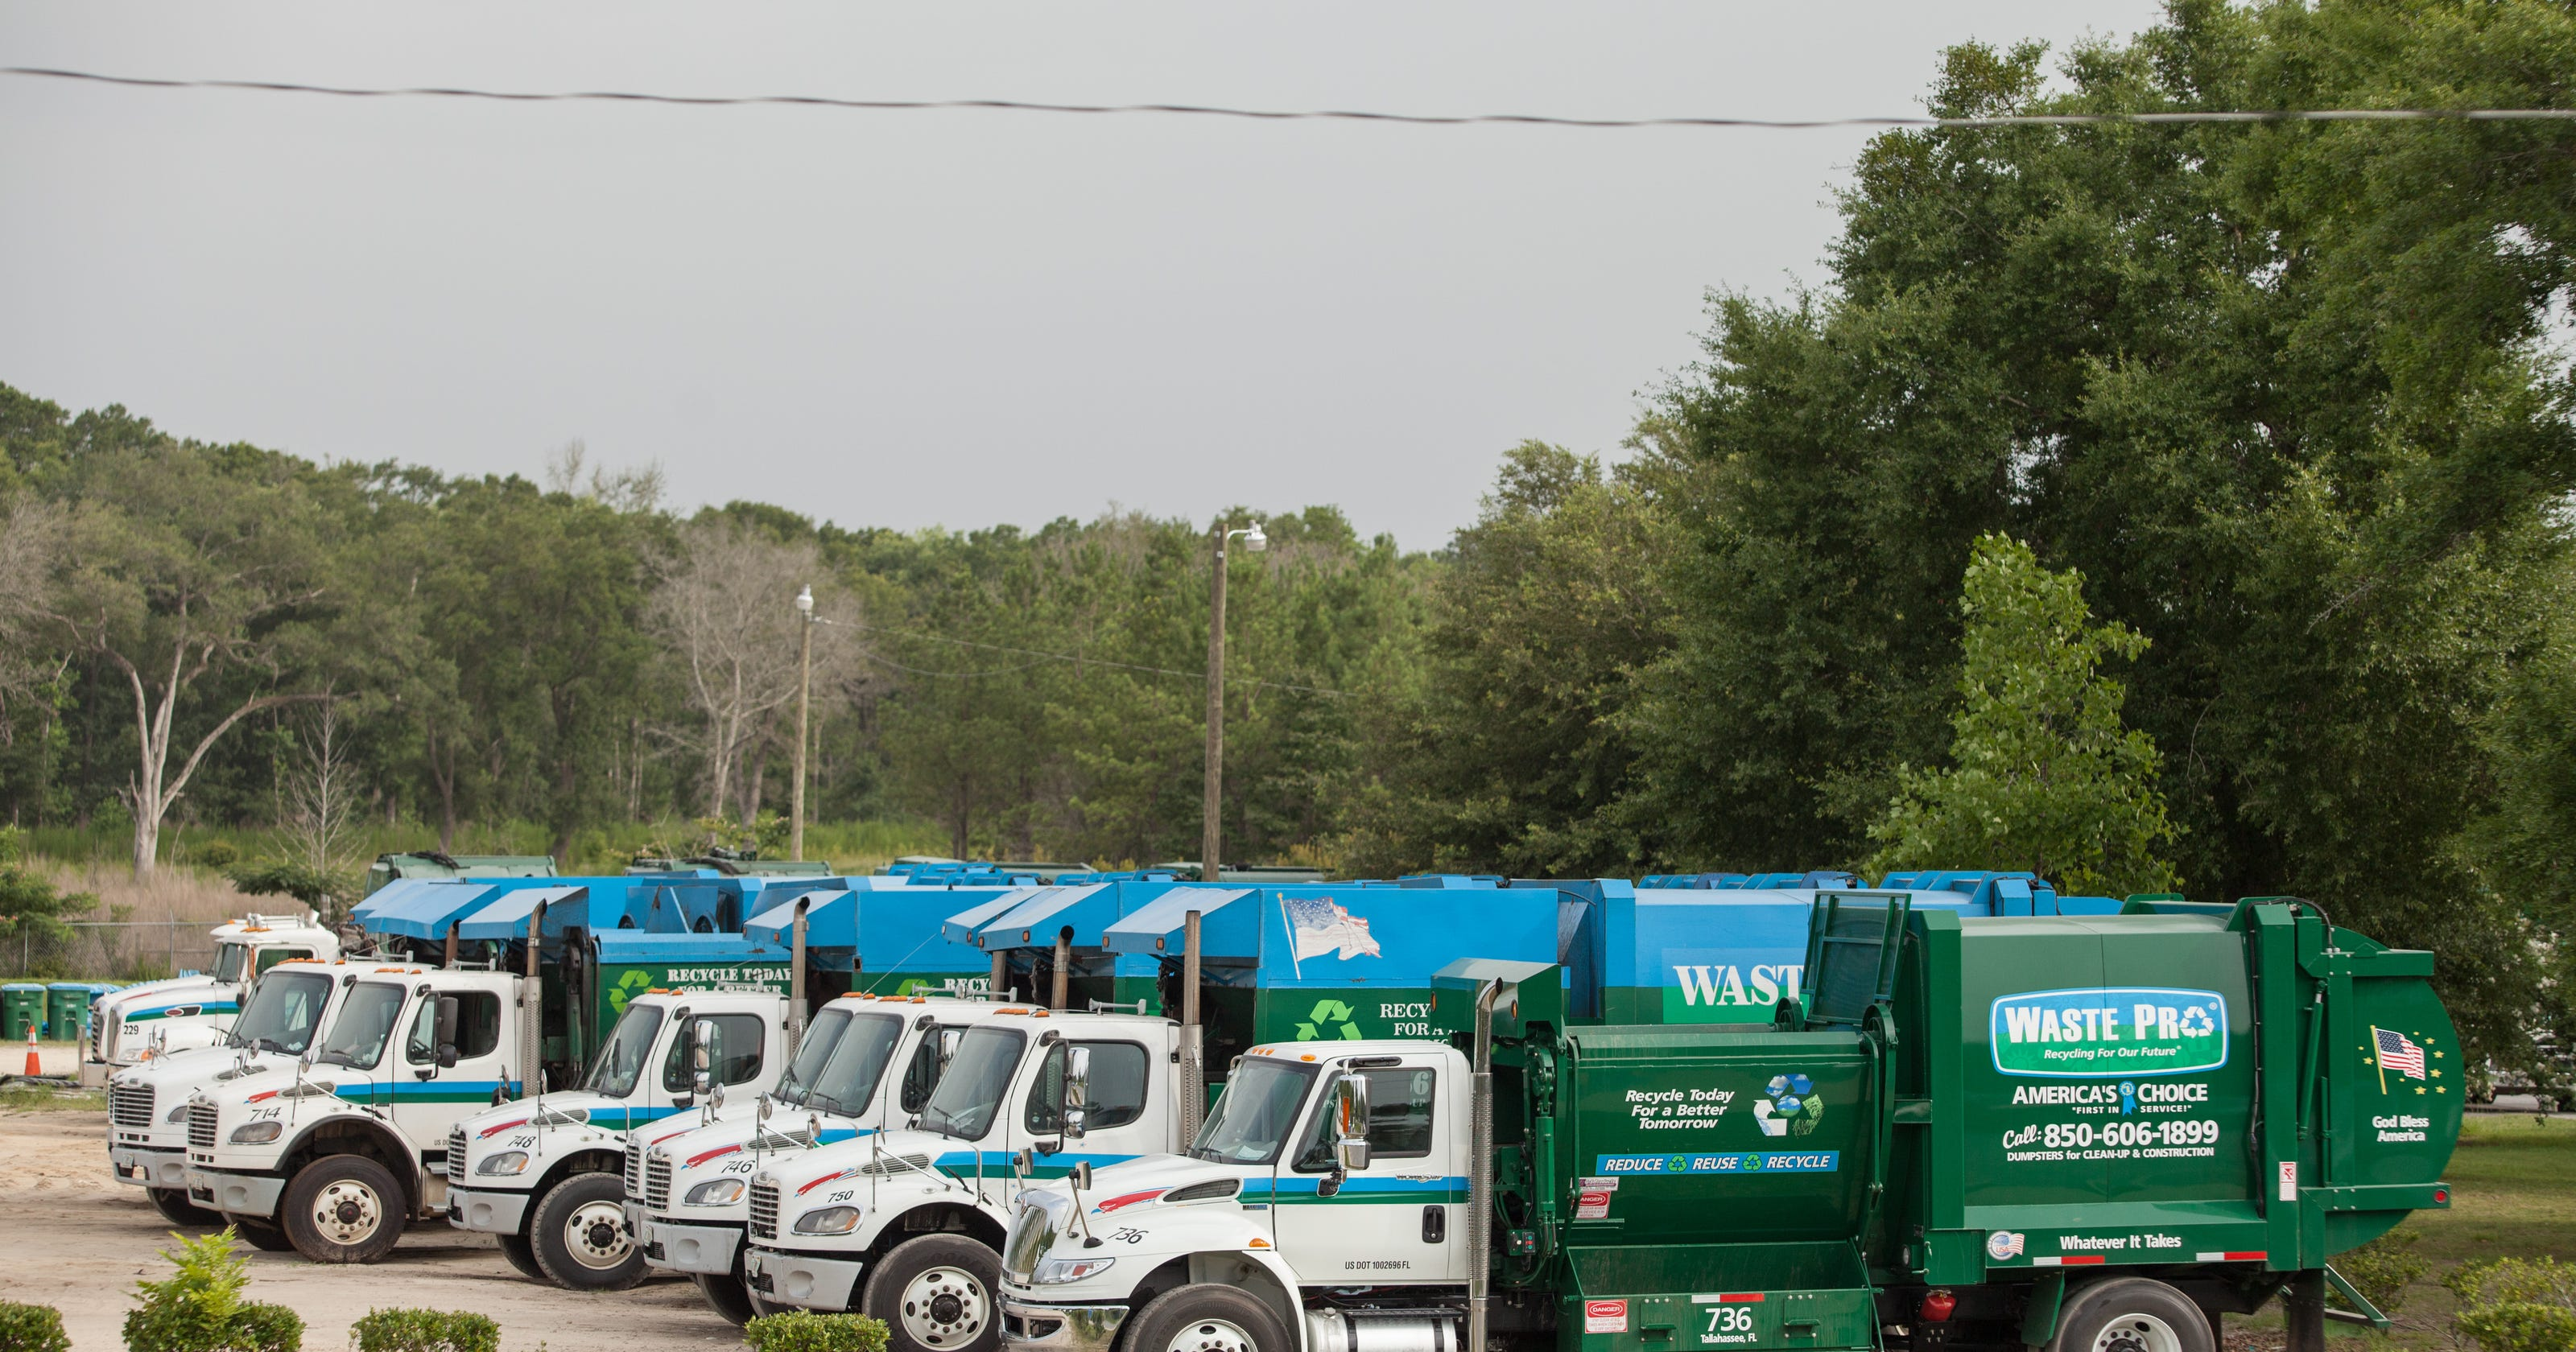 Waste Pro confirms it is cooperating in FBI probe